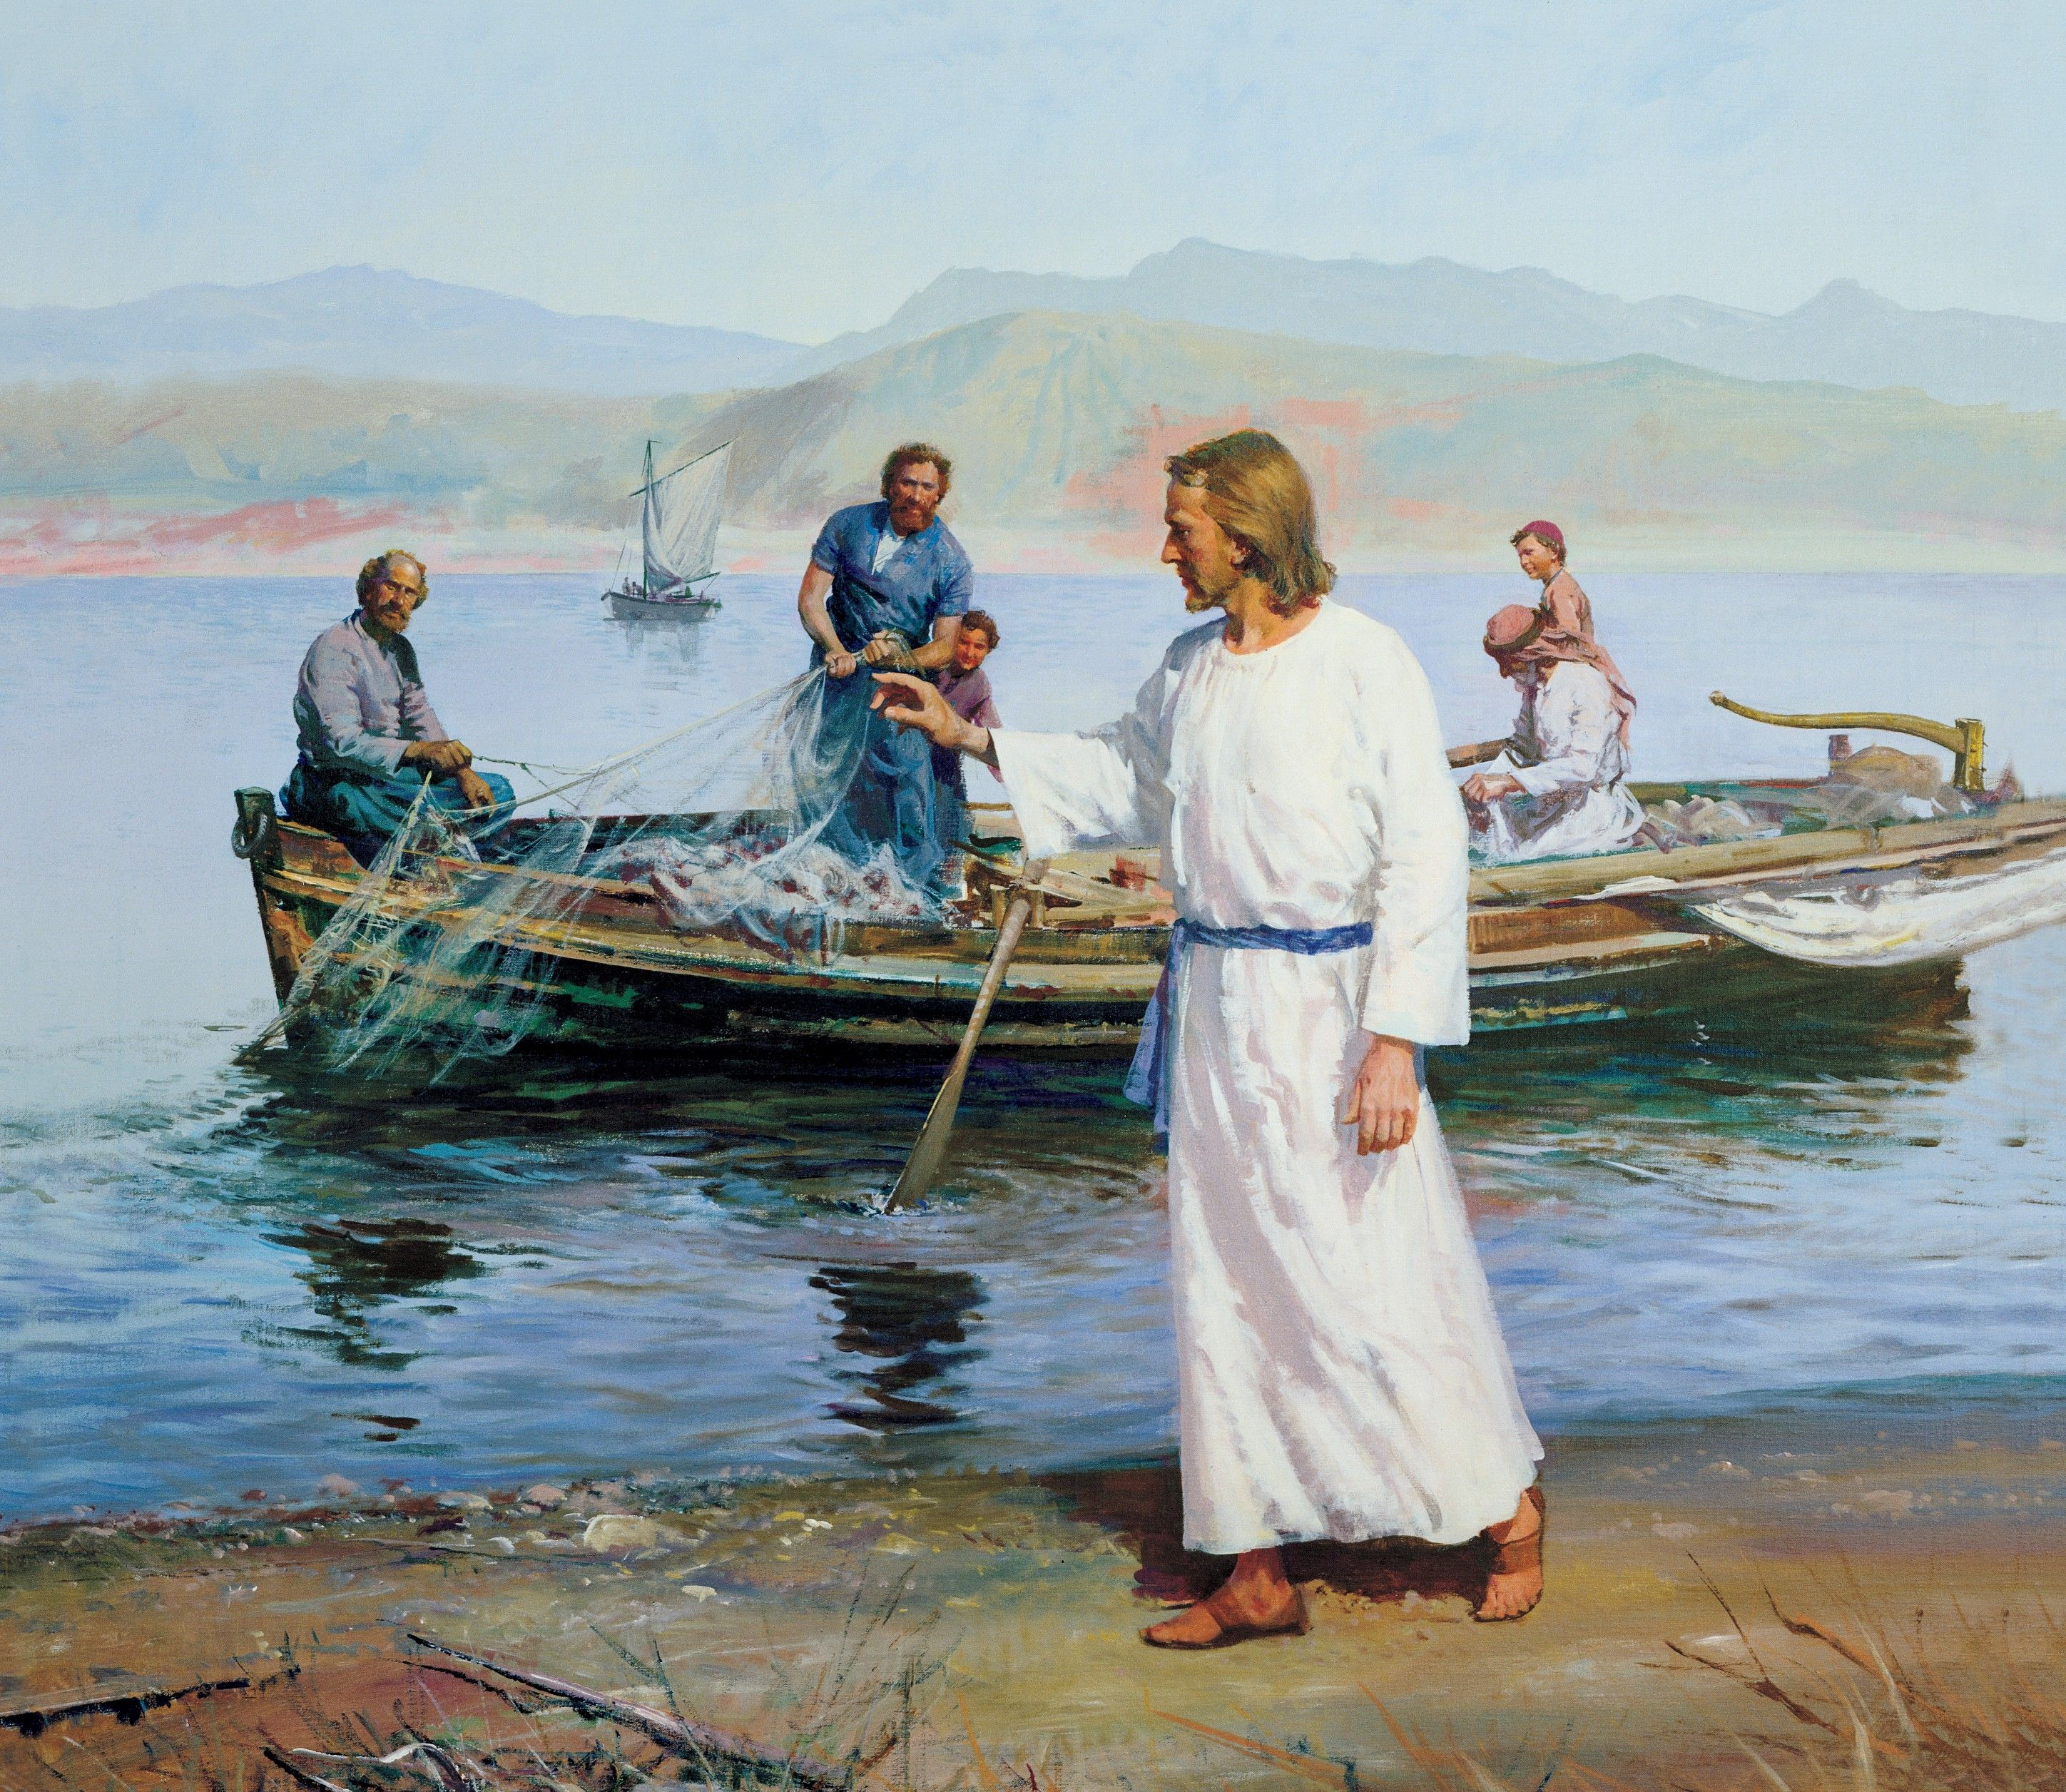 Calling of the Fishermen (Christ Calling Peter and Andrew), by Harry Anderson (62496); GAK 209; GAB 37; Primary manual 2-24; Primary manual 7-10; Matthew 4:18–22; Mark 1:16–20